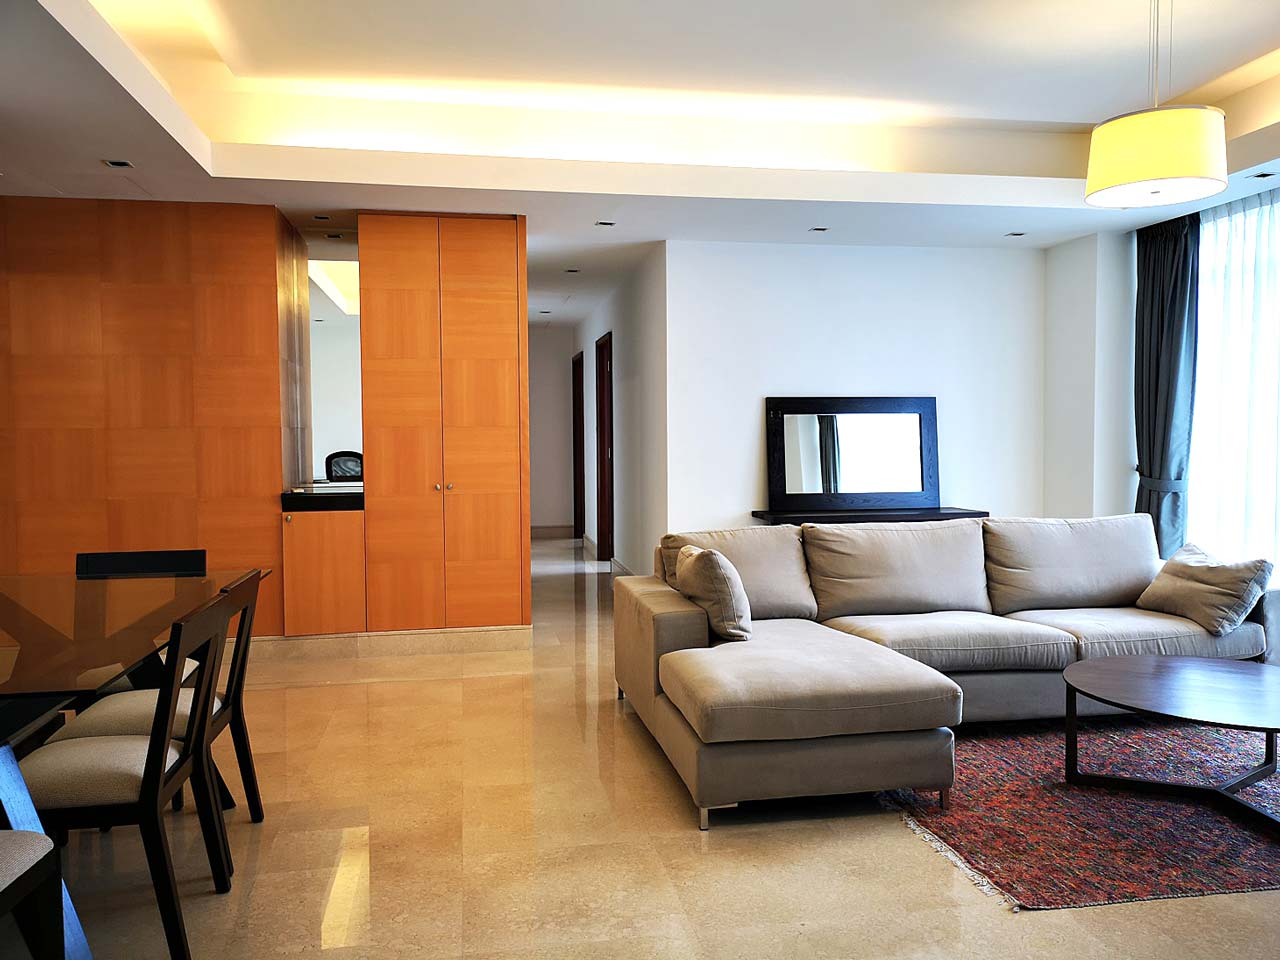 Orchard Scotts Condo For Rent - Living Room